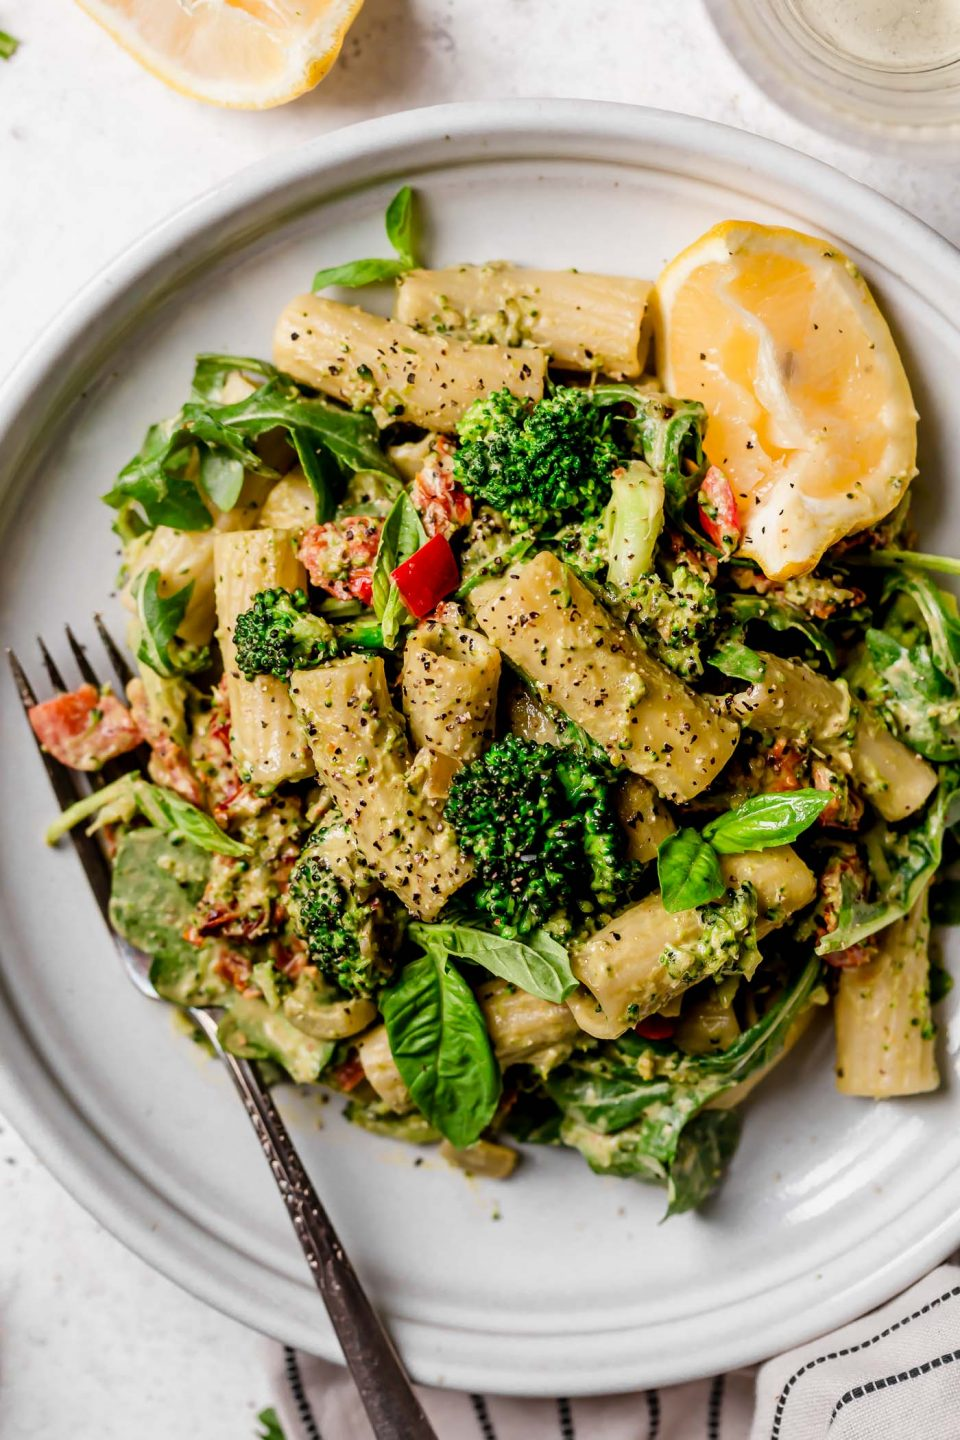 Creamy vegan pasta, tossed with broccoli, bell peppers, & arugula, served on a small white plate. The plate is placed on a white surface next to a black & white striped linen & a glass of white wine.